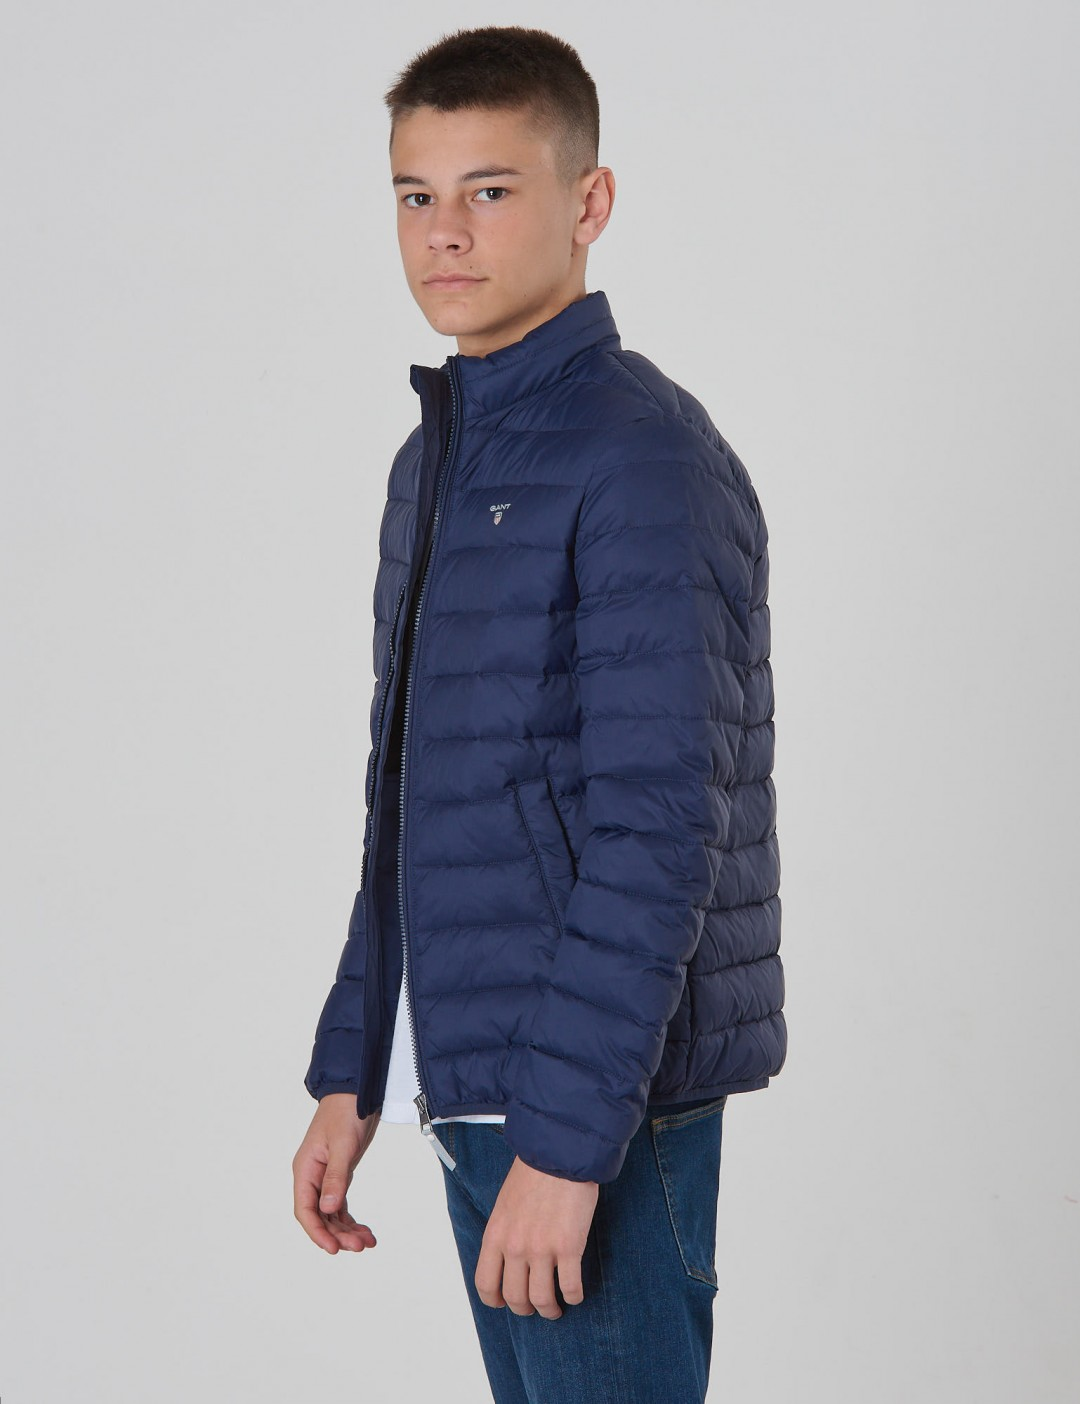 Om Tb. The Light Weight Puffer Jacket Blå från Gant